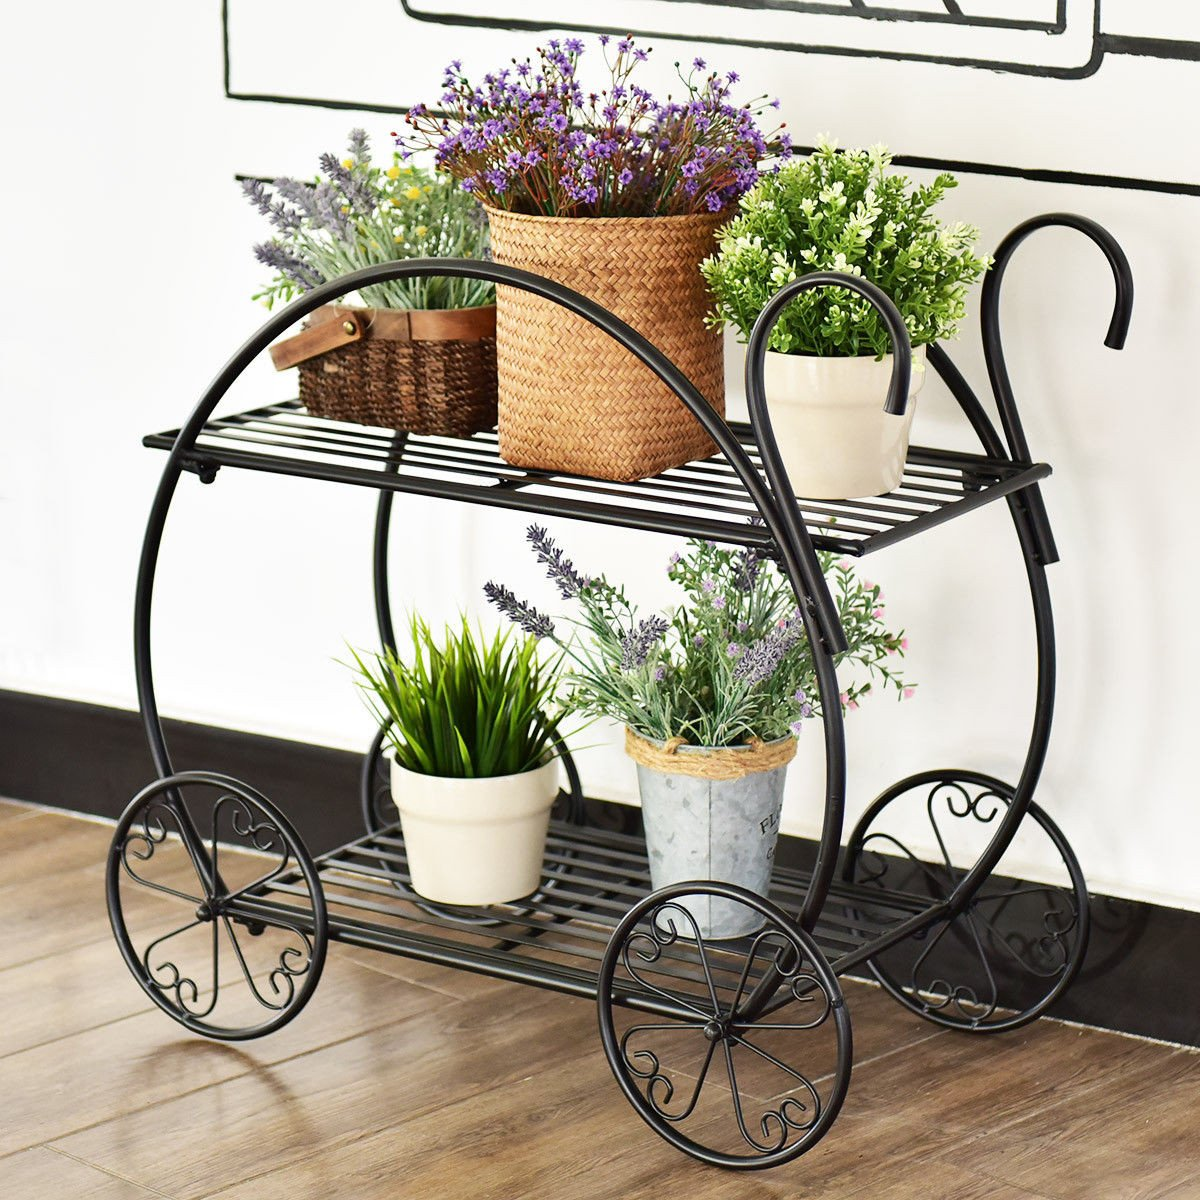 Costway Heavy Duty Metal Flower Cart Pot Rack Plant Display Stand Holder Decor